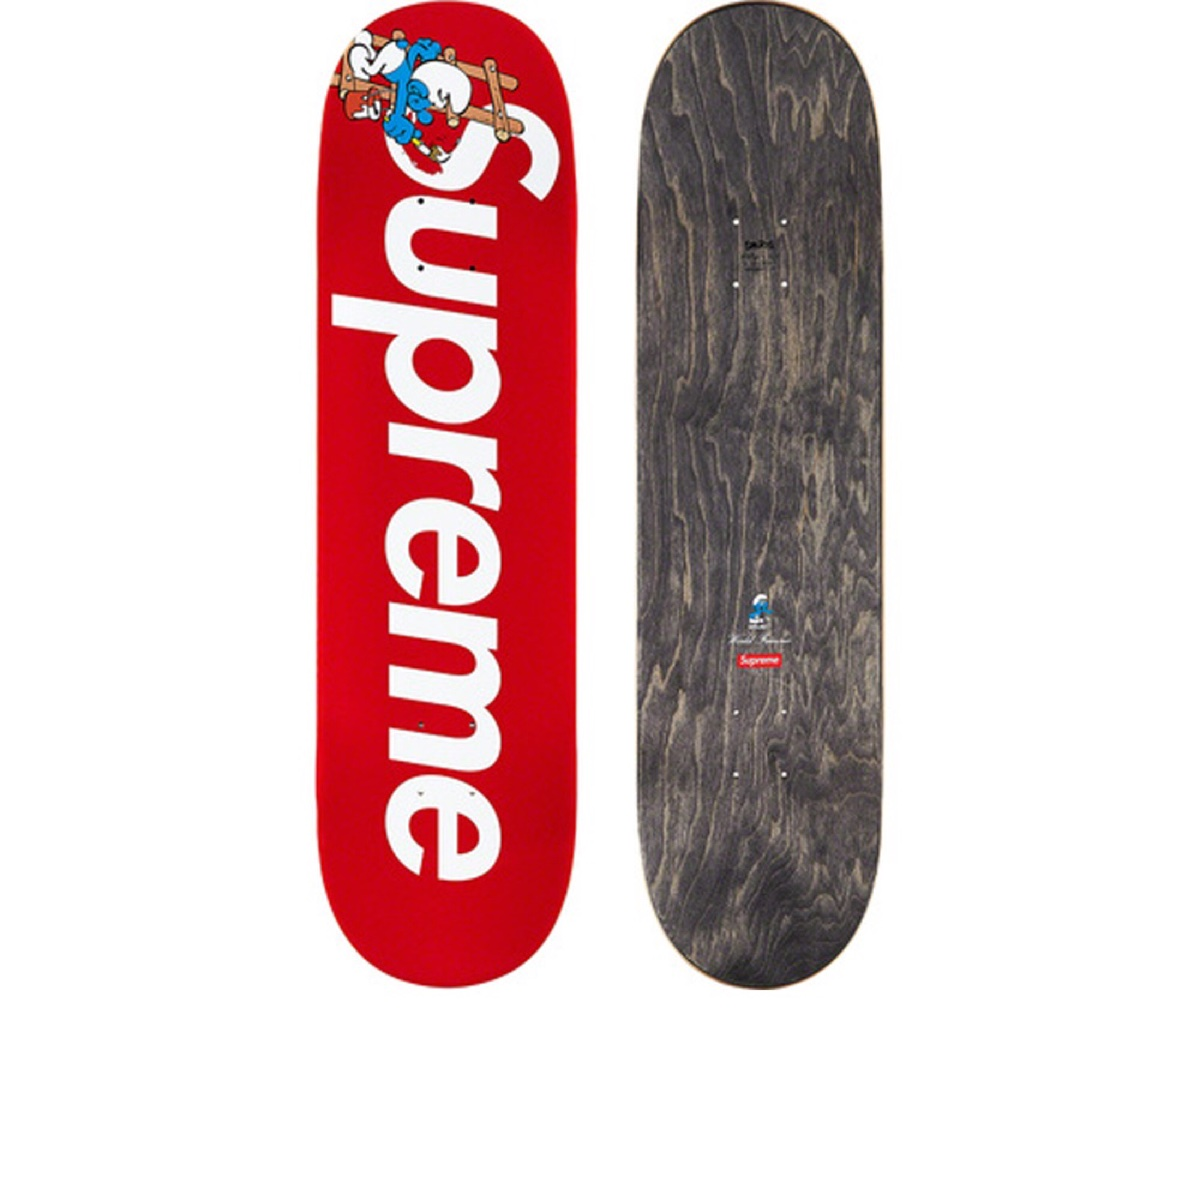 Supreme Smurfs Skateboard Red